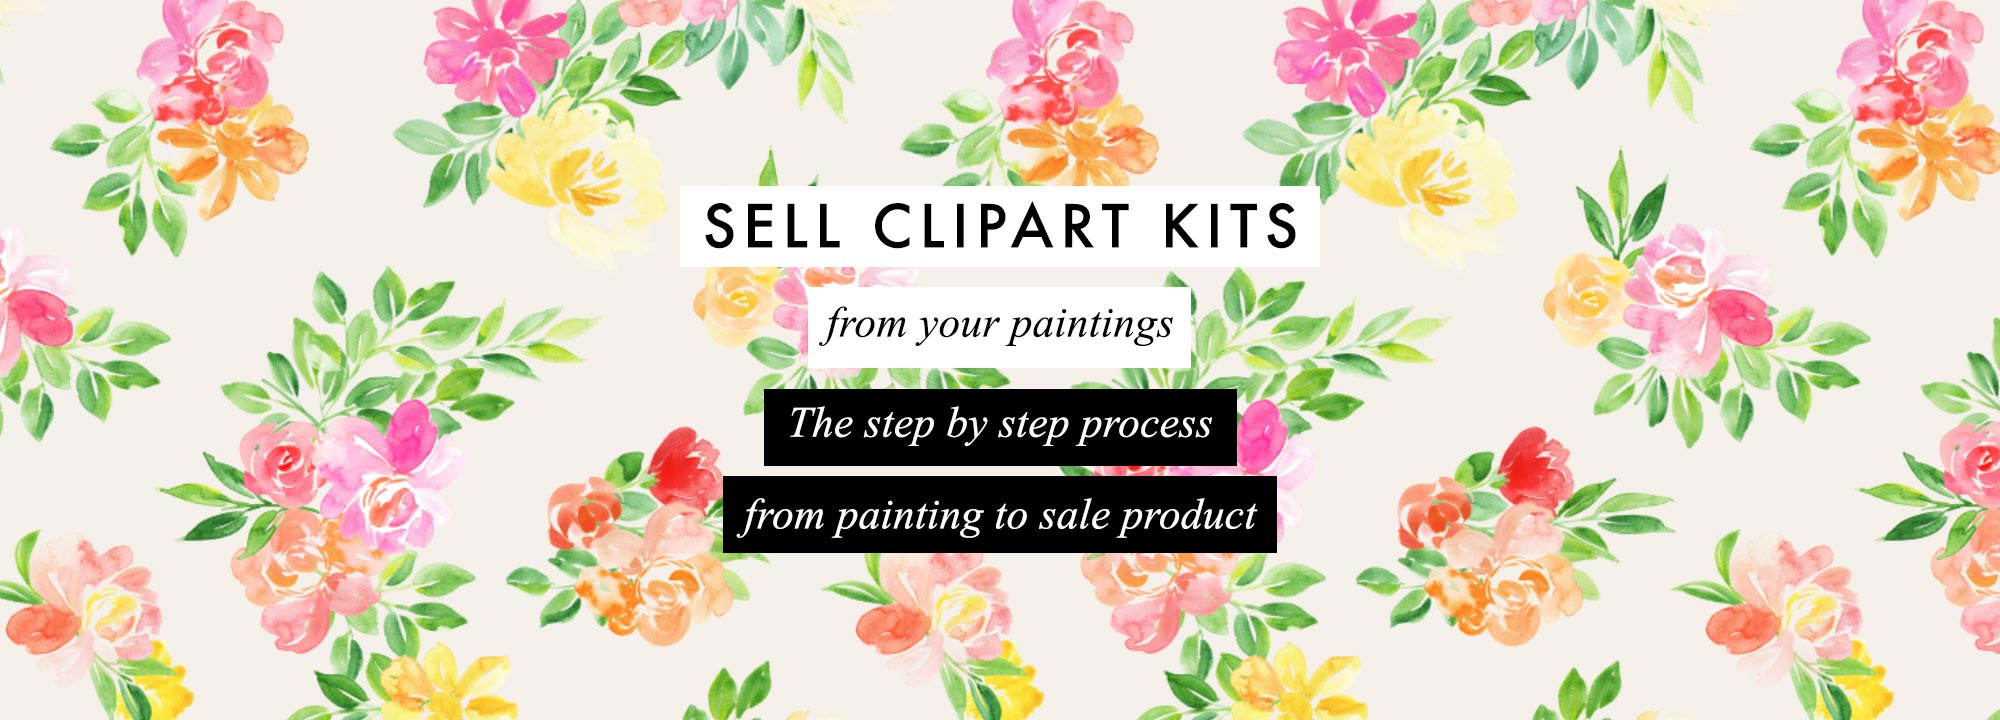 Step by step class to create clipart kits to sell your paintings over and over again